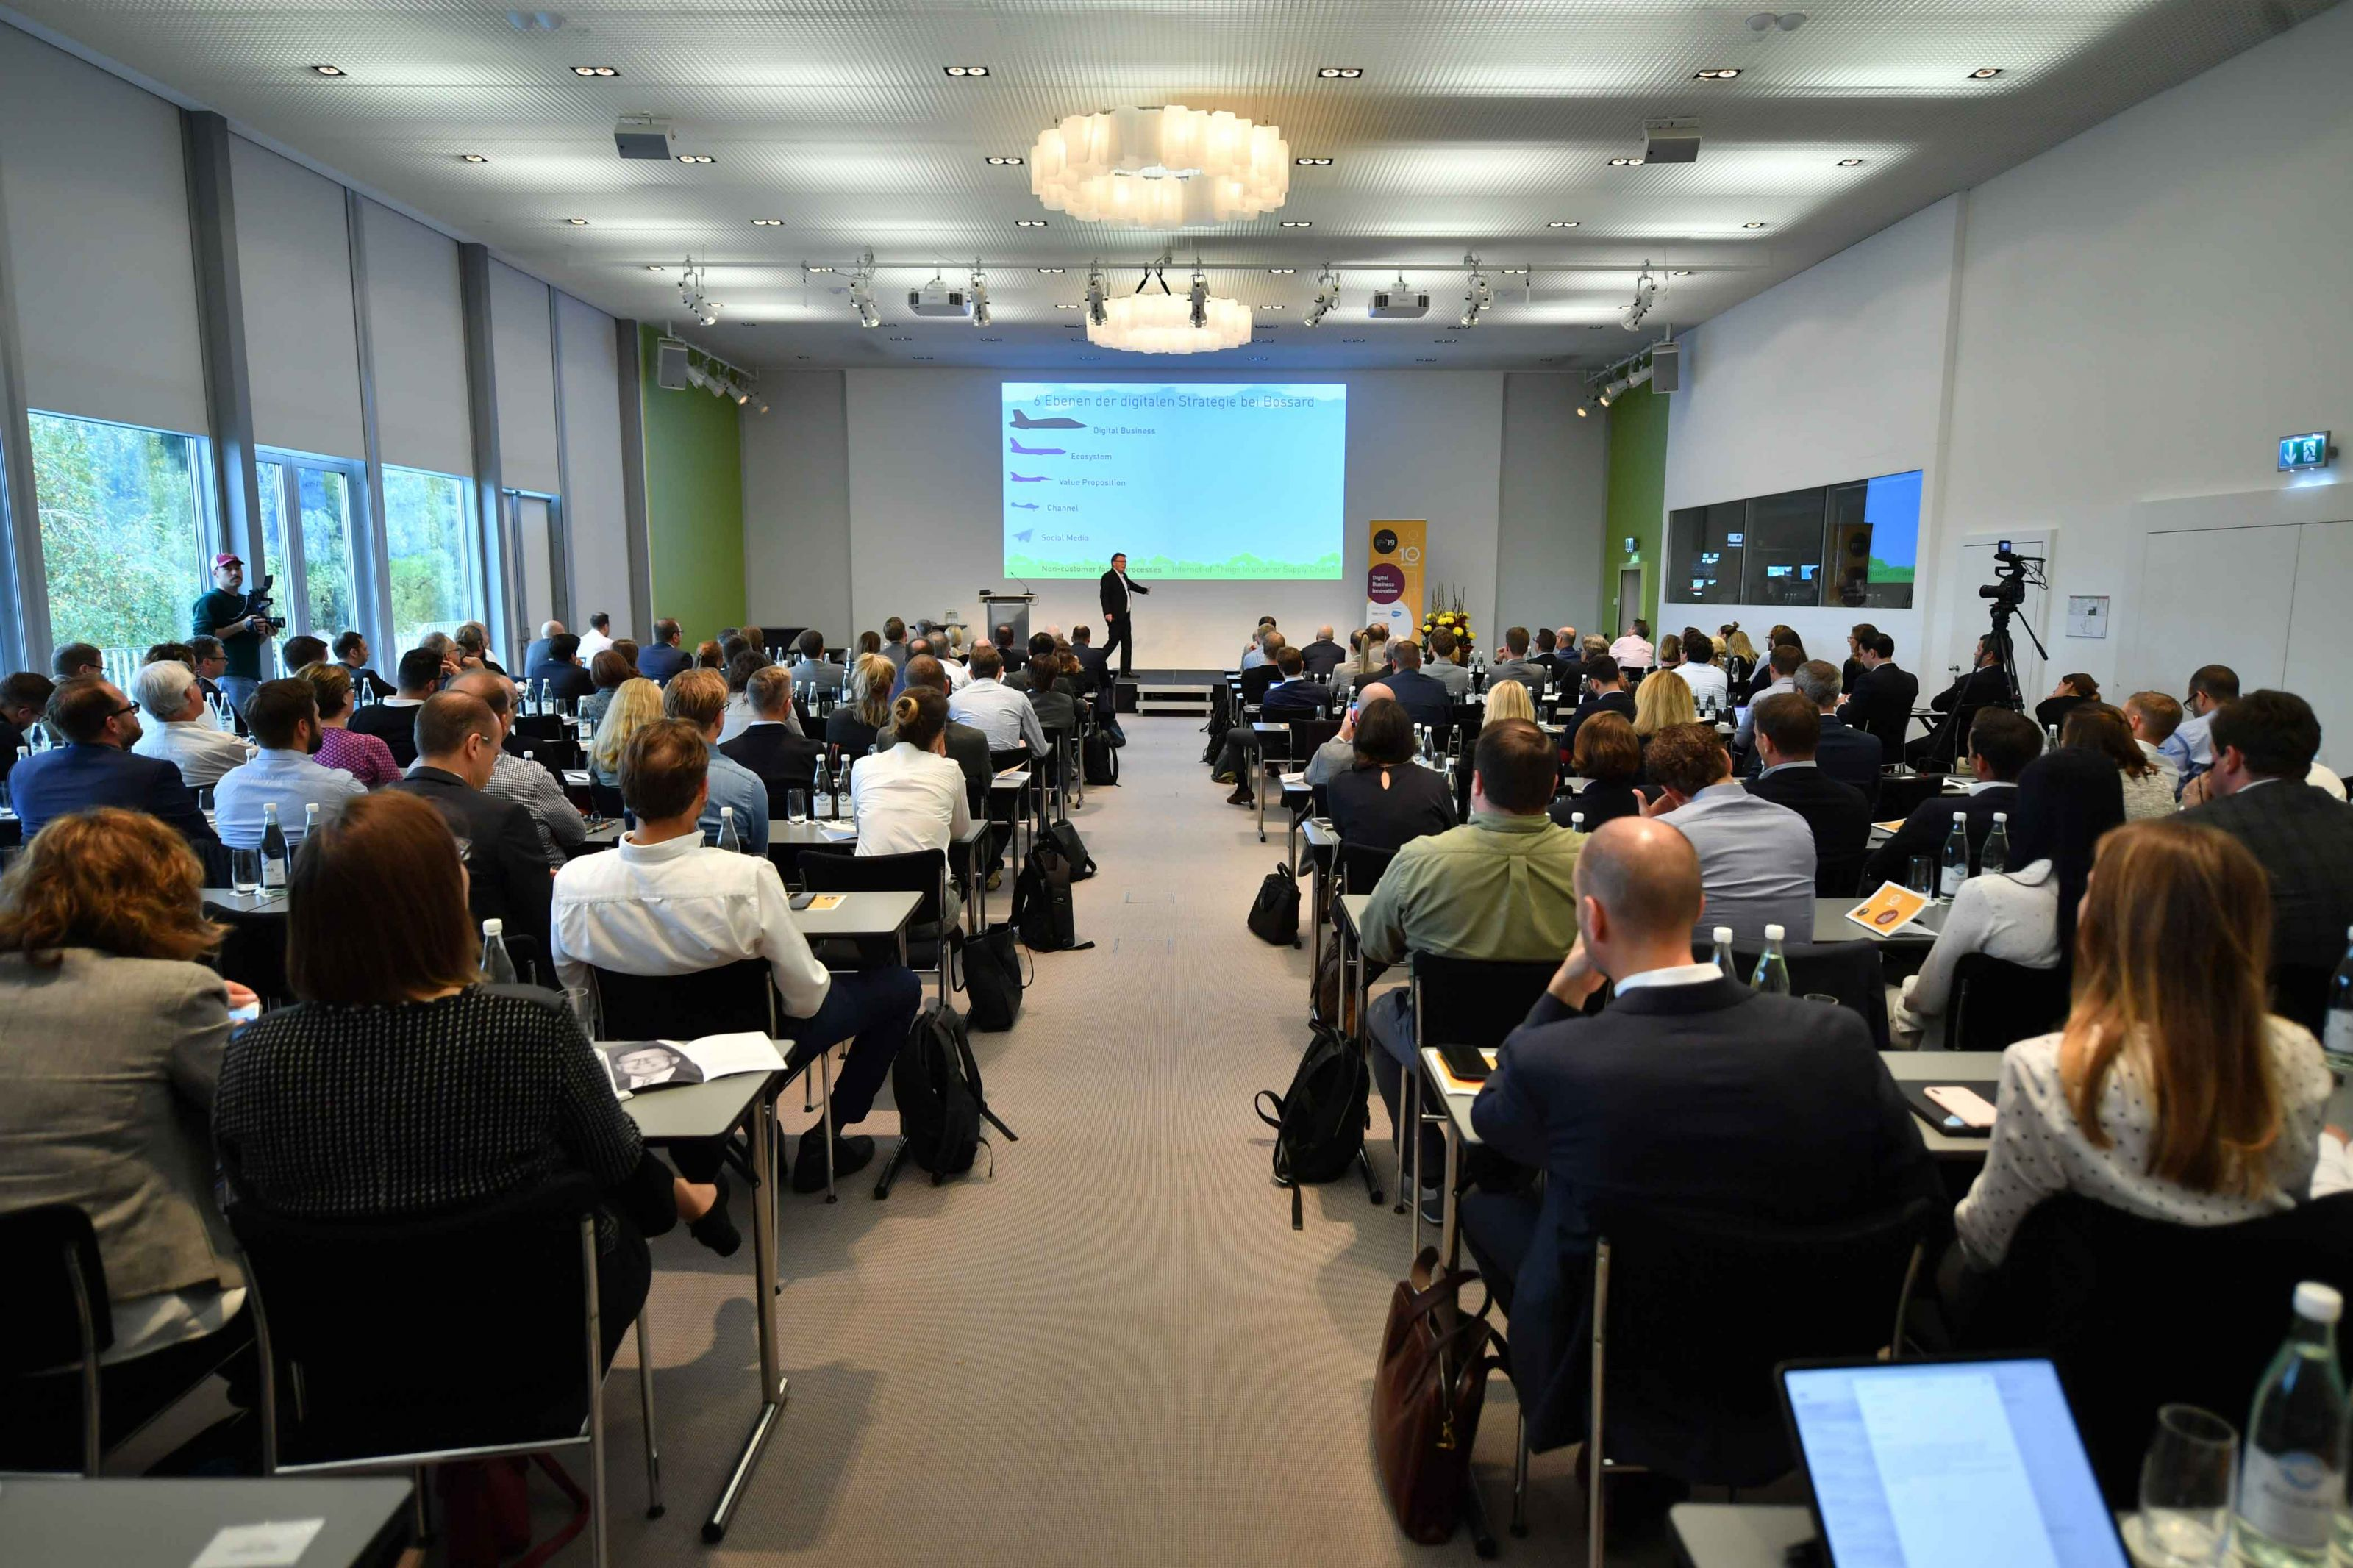 Das Publikum beim Smart Business Day 2019